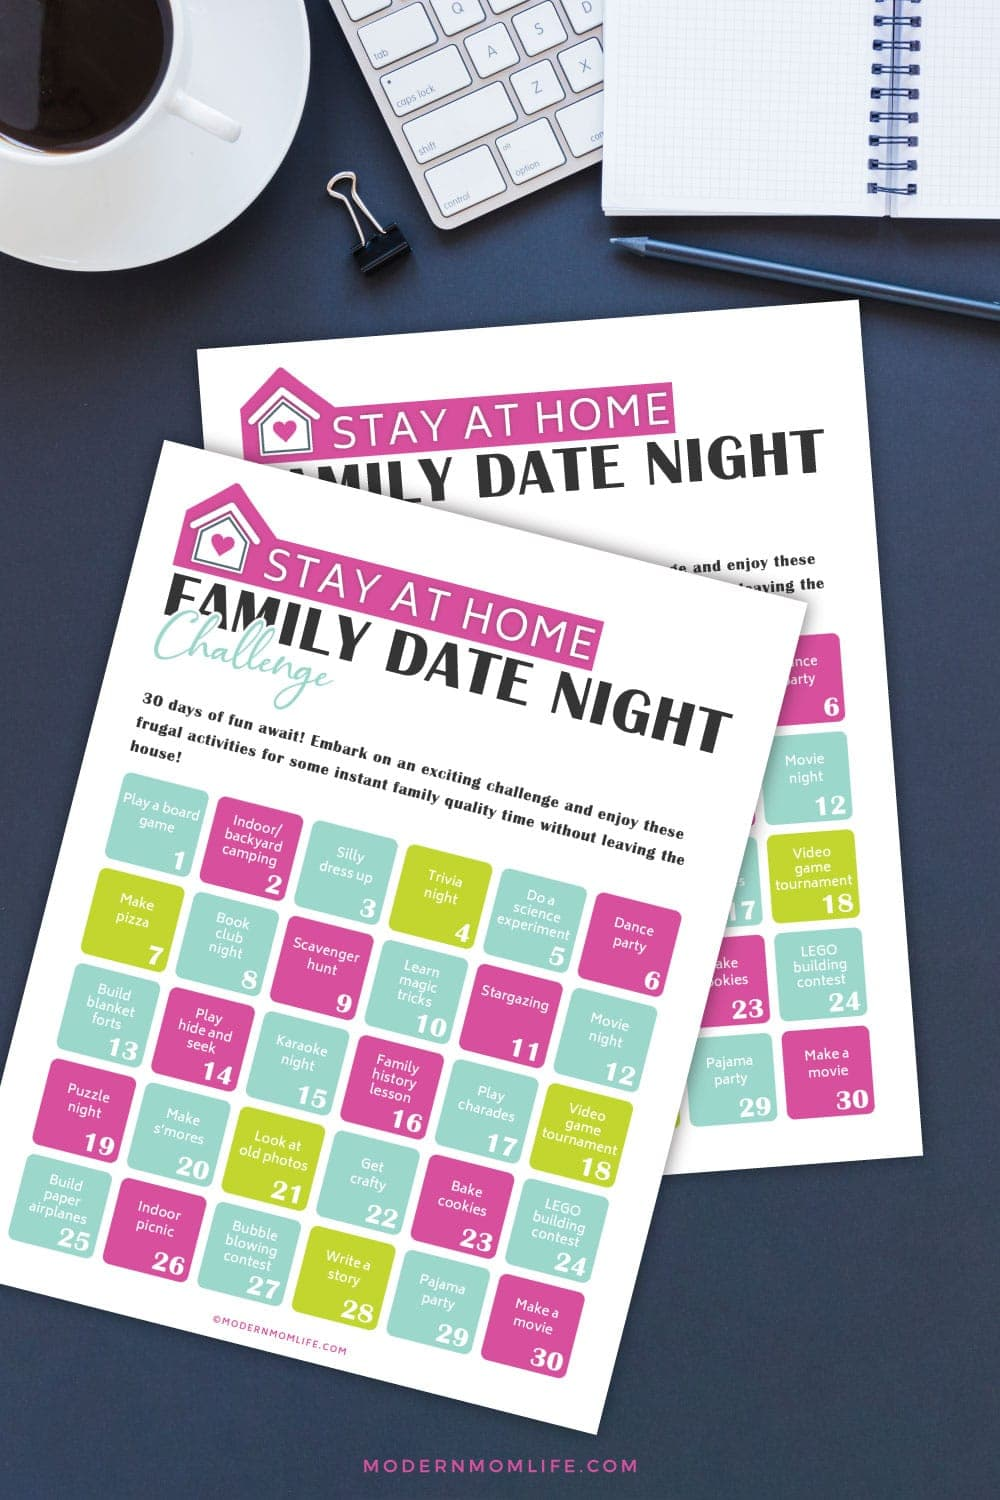 Family Date Night Challenge